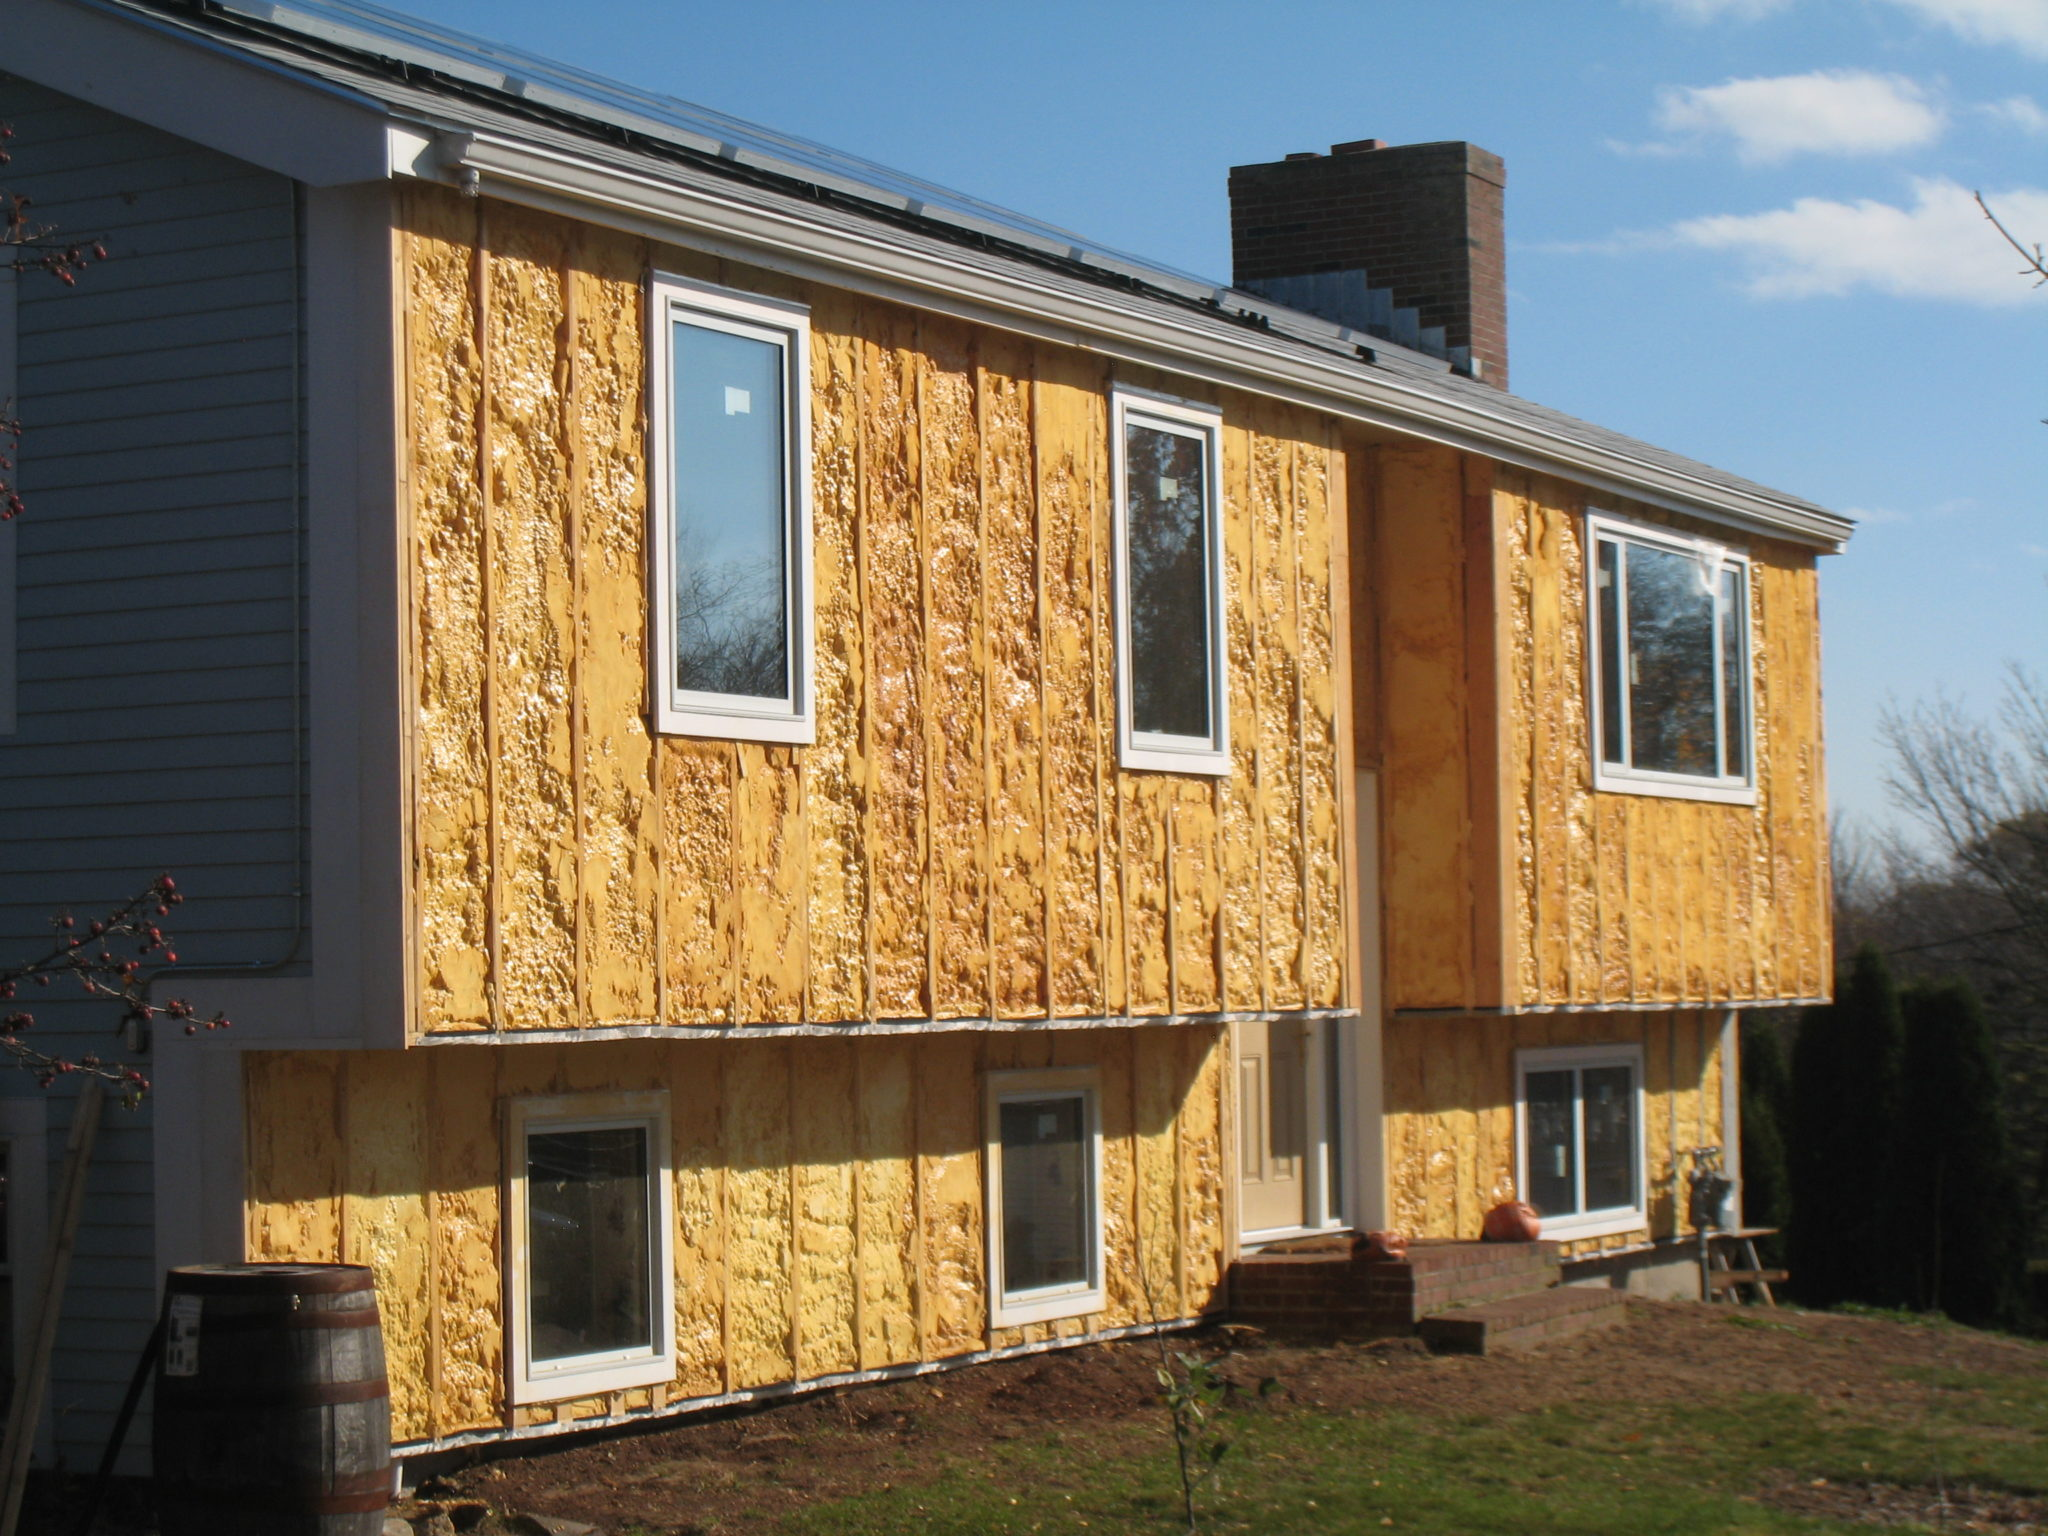 insulation, positive energy home